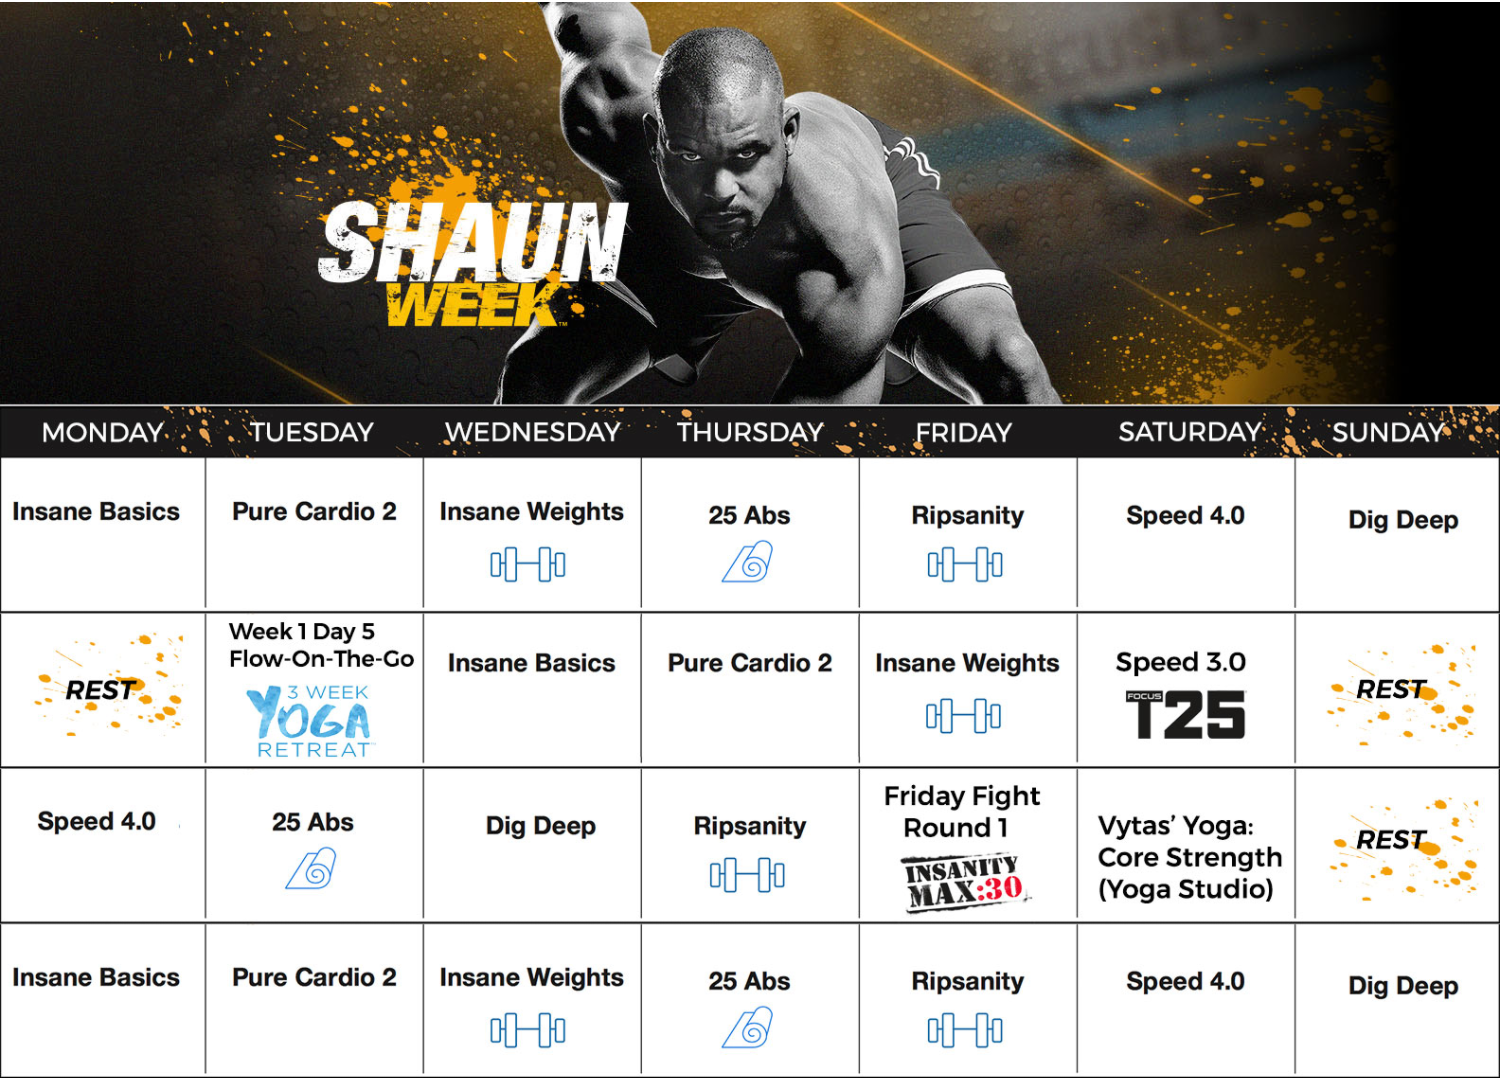 Shaun Week, 30 day calendar, Calendar, Workouts, Melanie Mitro, Top Coach, BOD, Accountability, Support